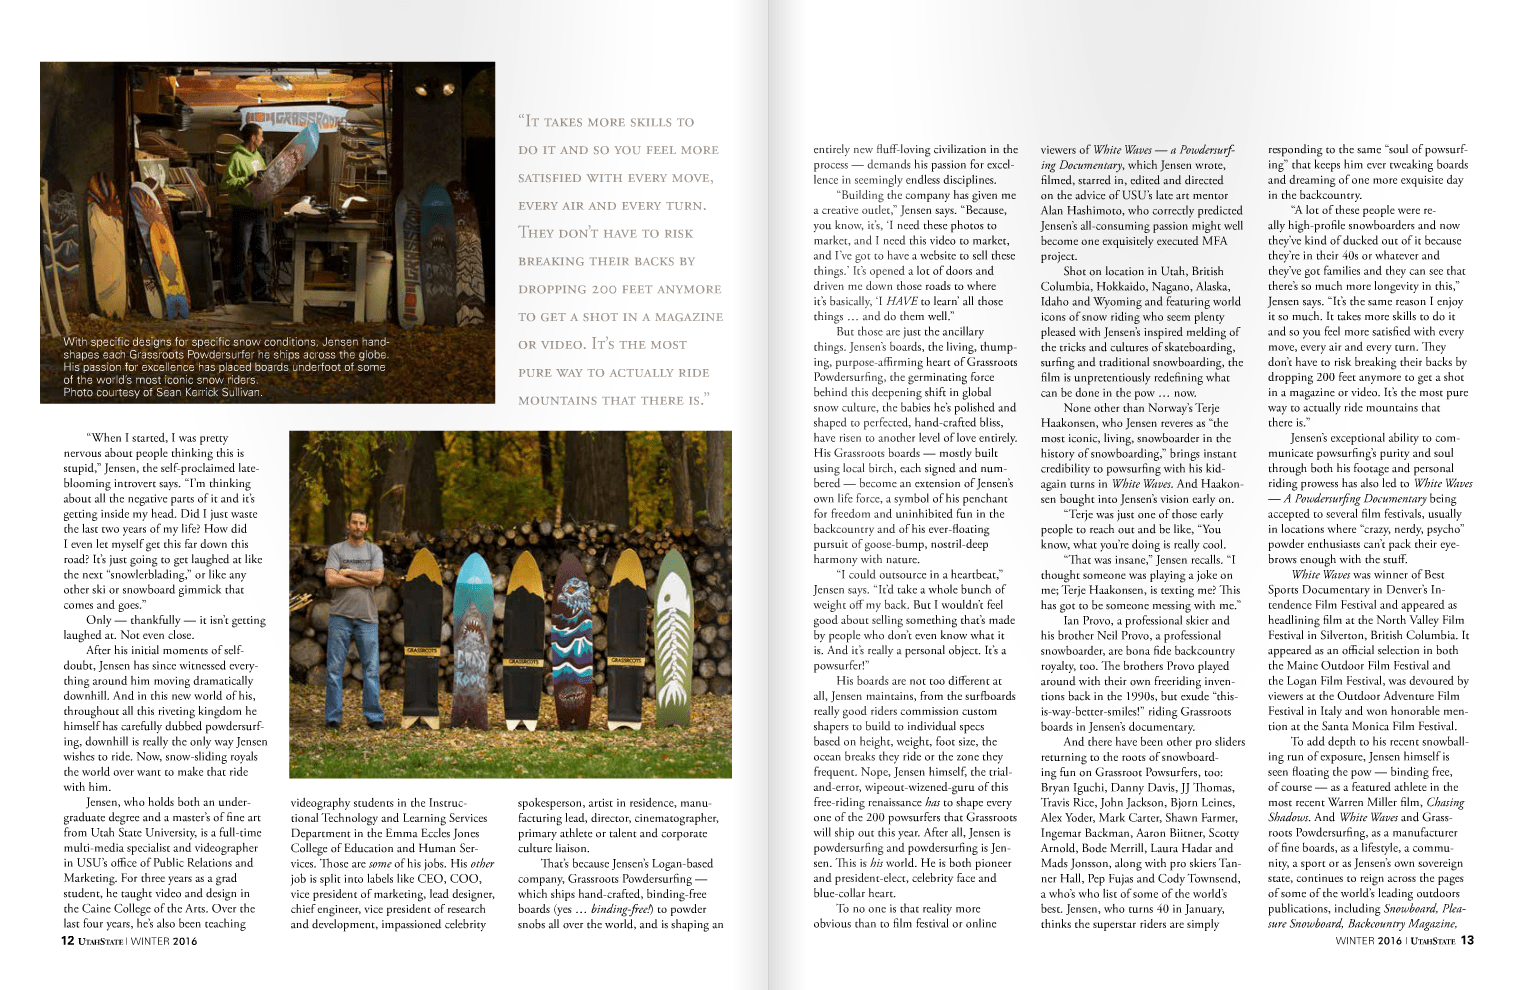 Grassroots Powdersurfing owner, founder and shaper Jeremy Jensen featured in Utah State Magazine